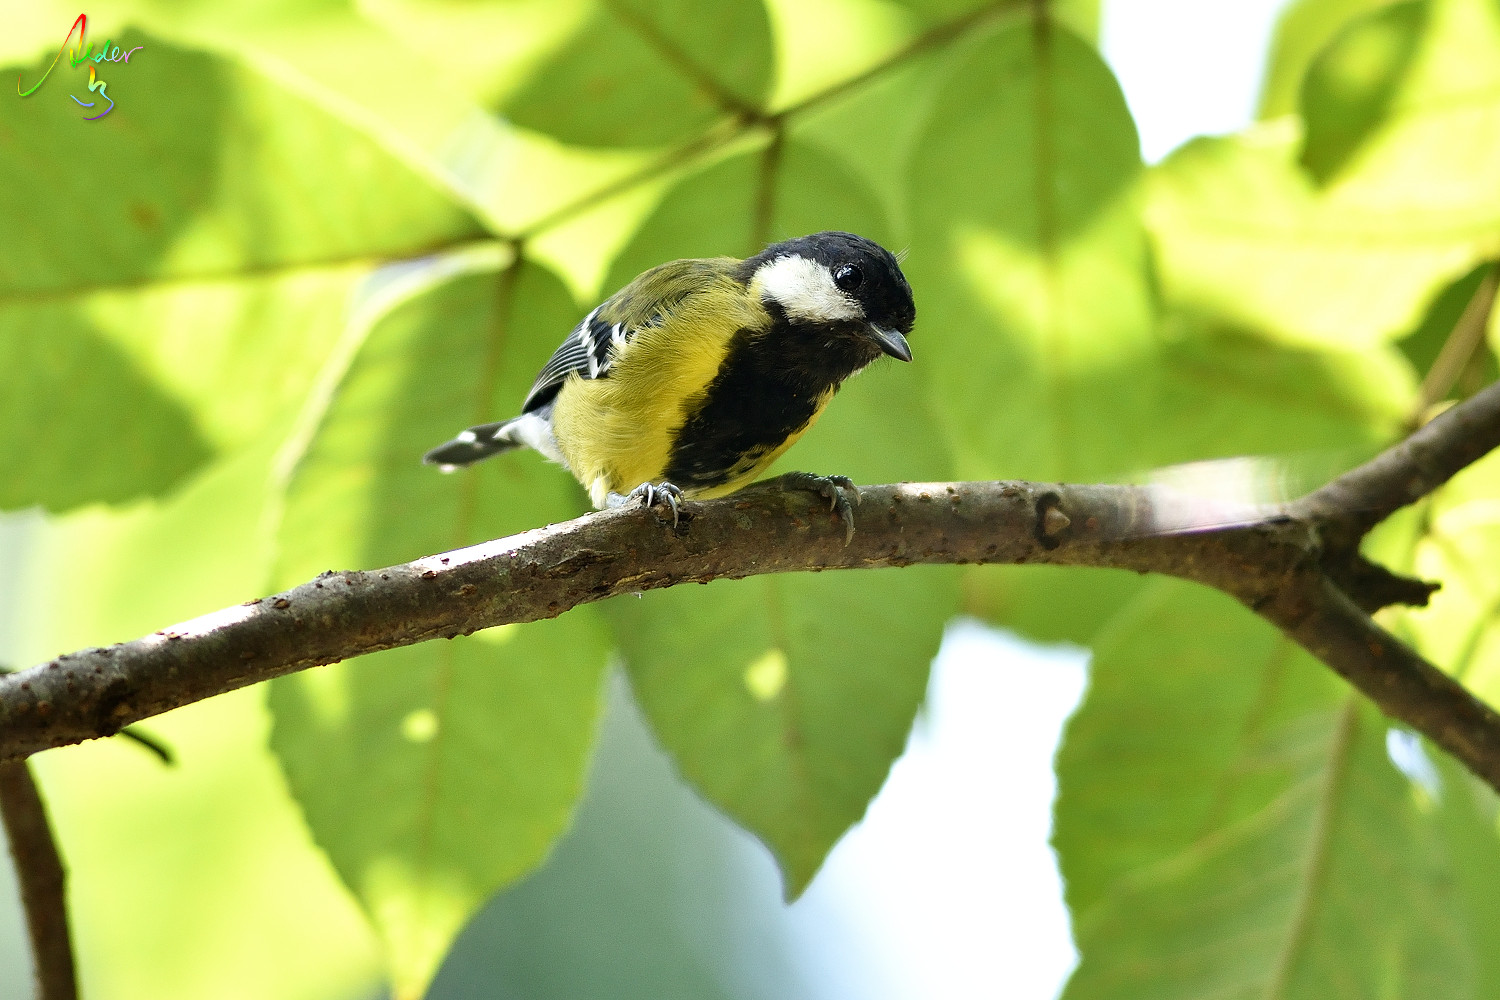 Green-backed_Tit_7517